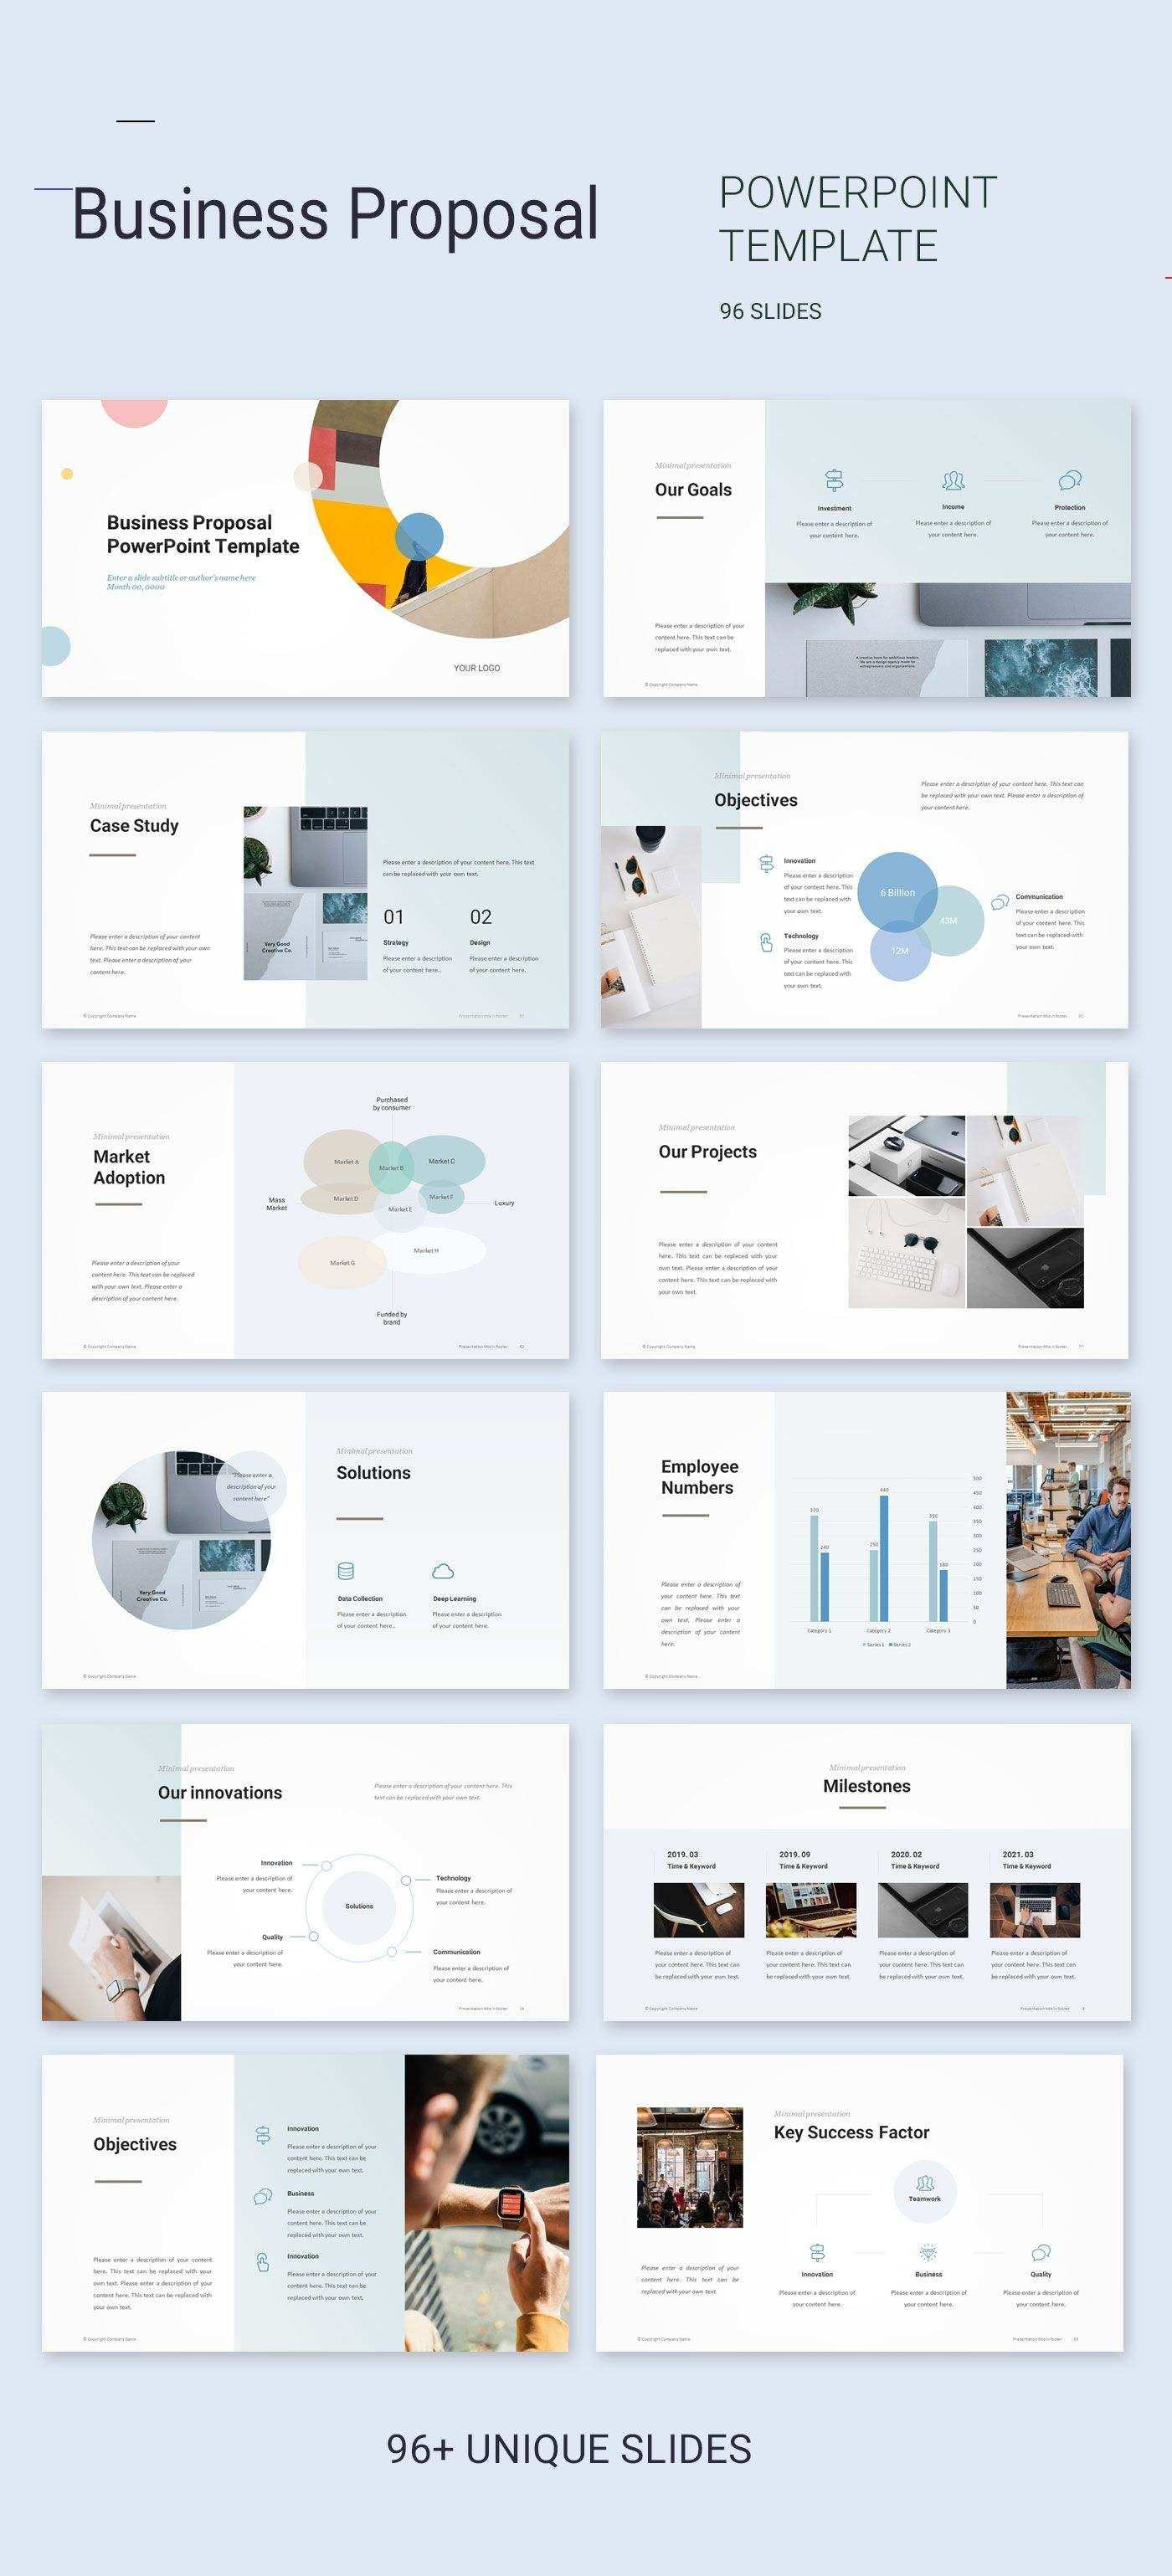 Business Proposal Powerpoint Template Powerpoint Download Business Proposal Powerpoint Template Wit Powerpoint Vorlagen Ppt Design Powerpoint Prasentation